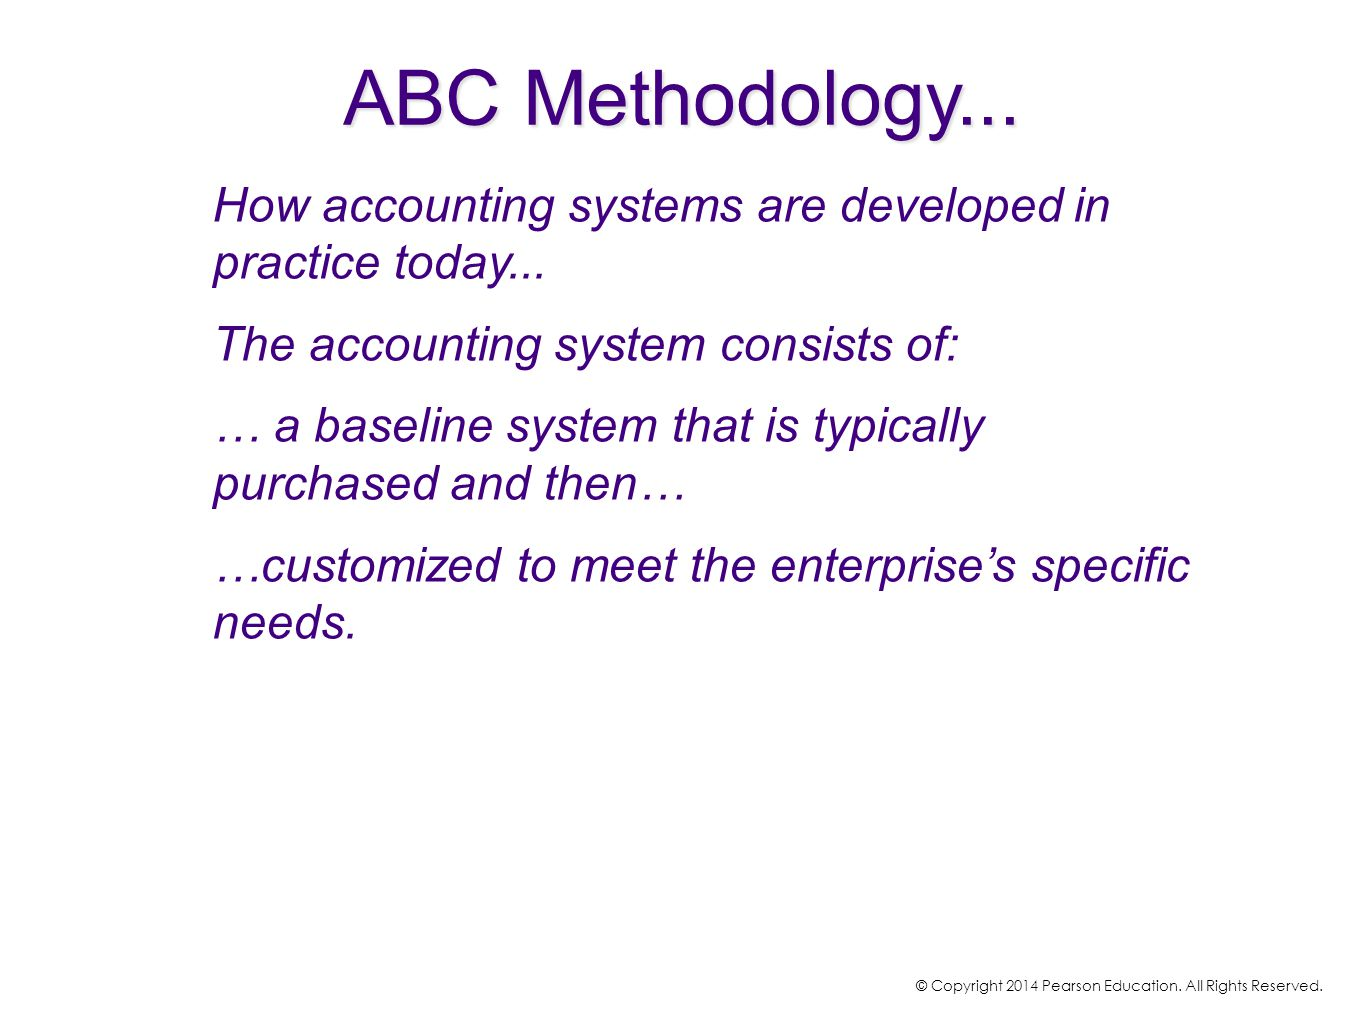 How accounting systems are developed in practice today... The accounting system consists of: … a baseline system that is typically purchased and then…